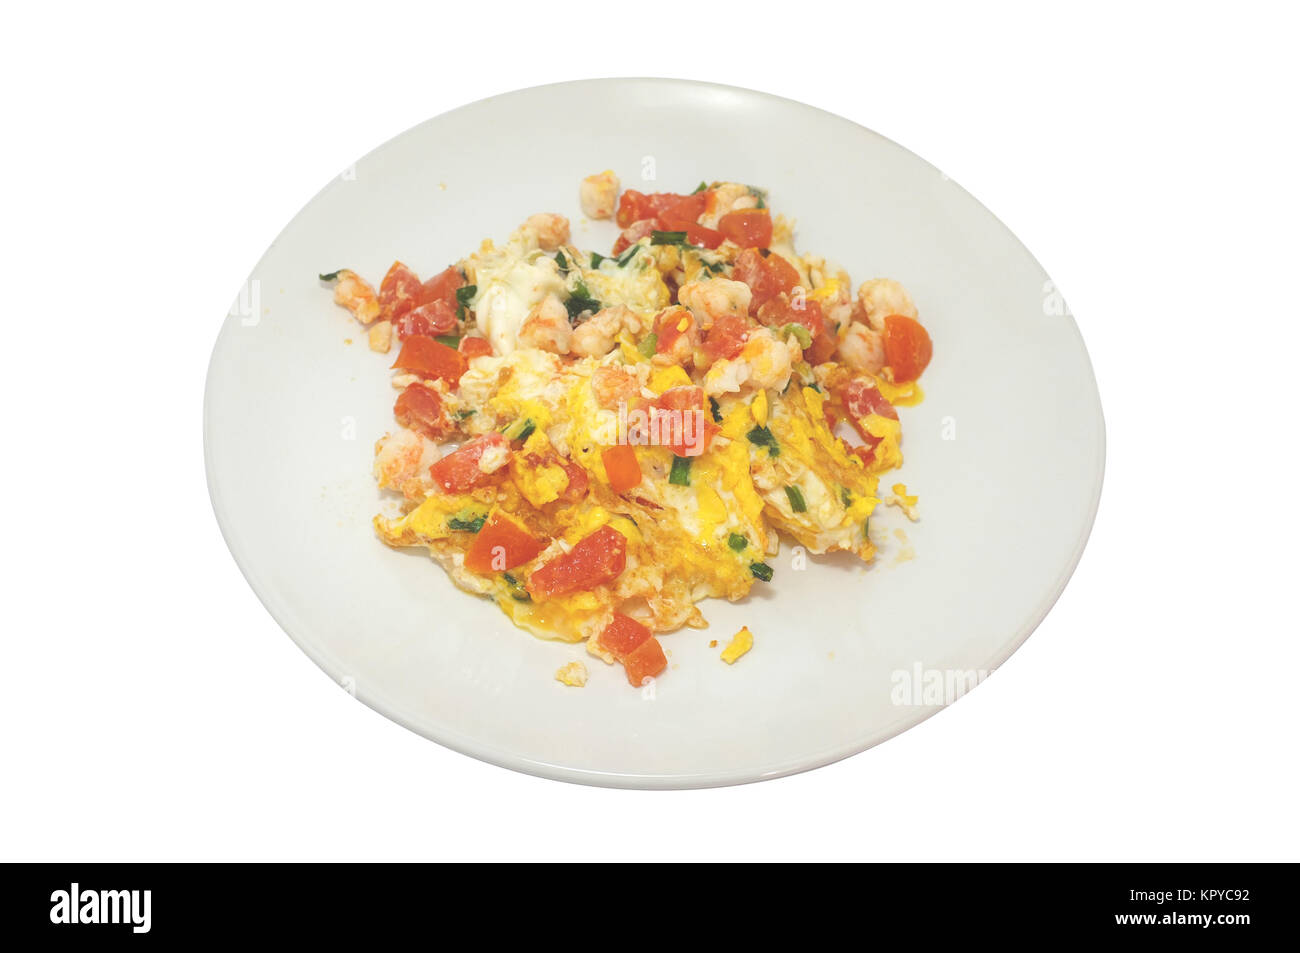 Omelet with shrimp and tomato - Stock Image